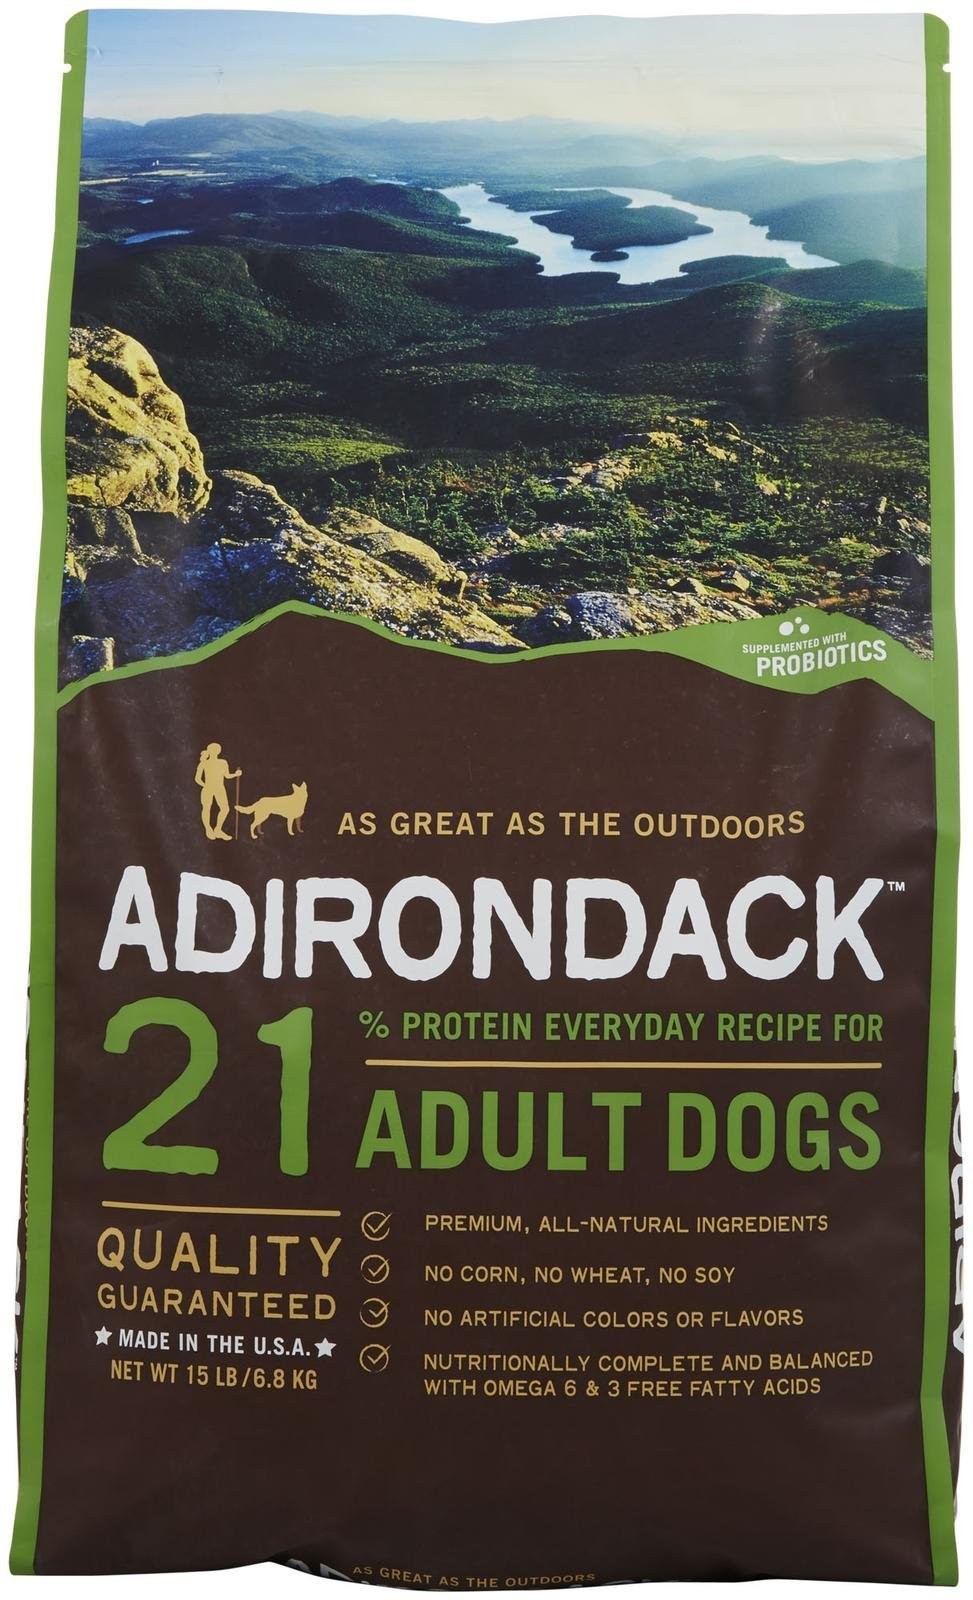 Blackwood Pet Food Adirondack Pet Food 22452 21% Protein Everyday Recipe For Adult Dogs, 15lb.